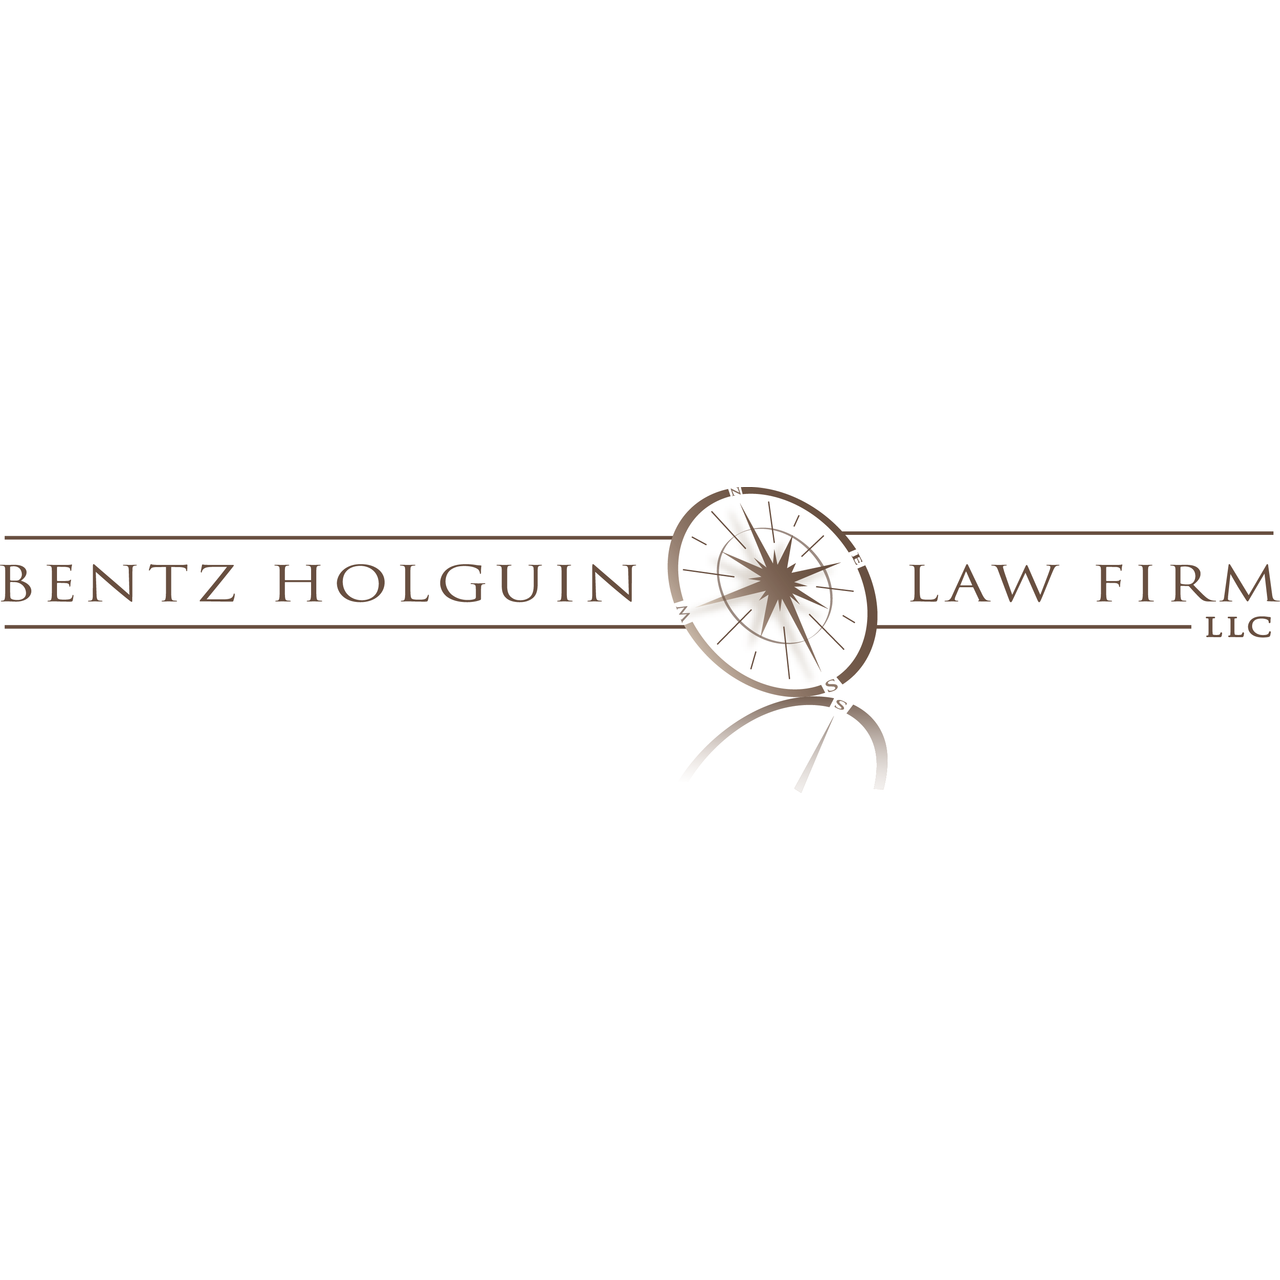 Bentz-Holguin Law Firm, LLC